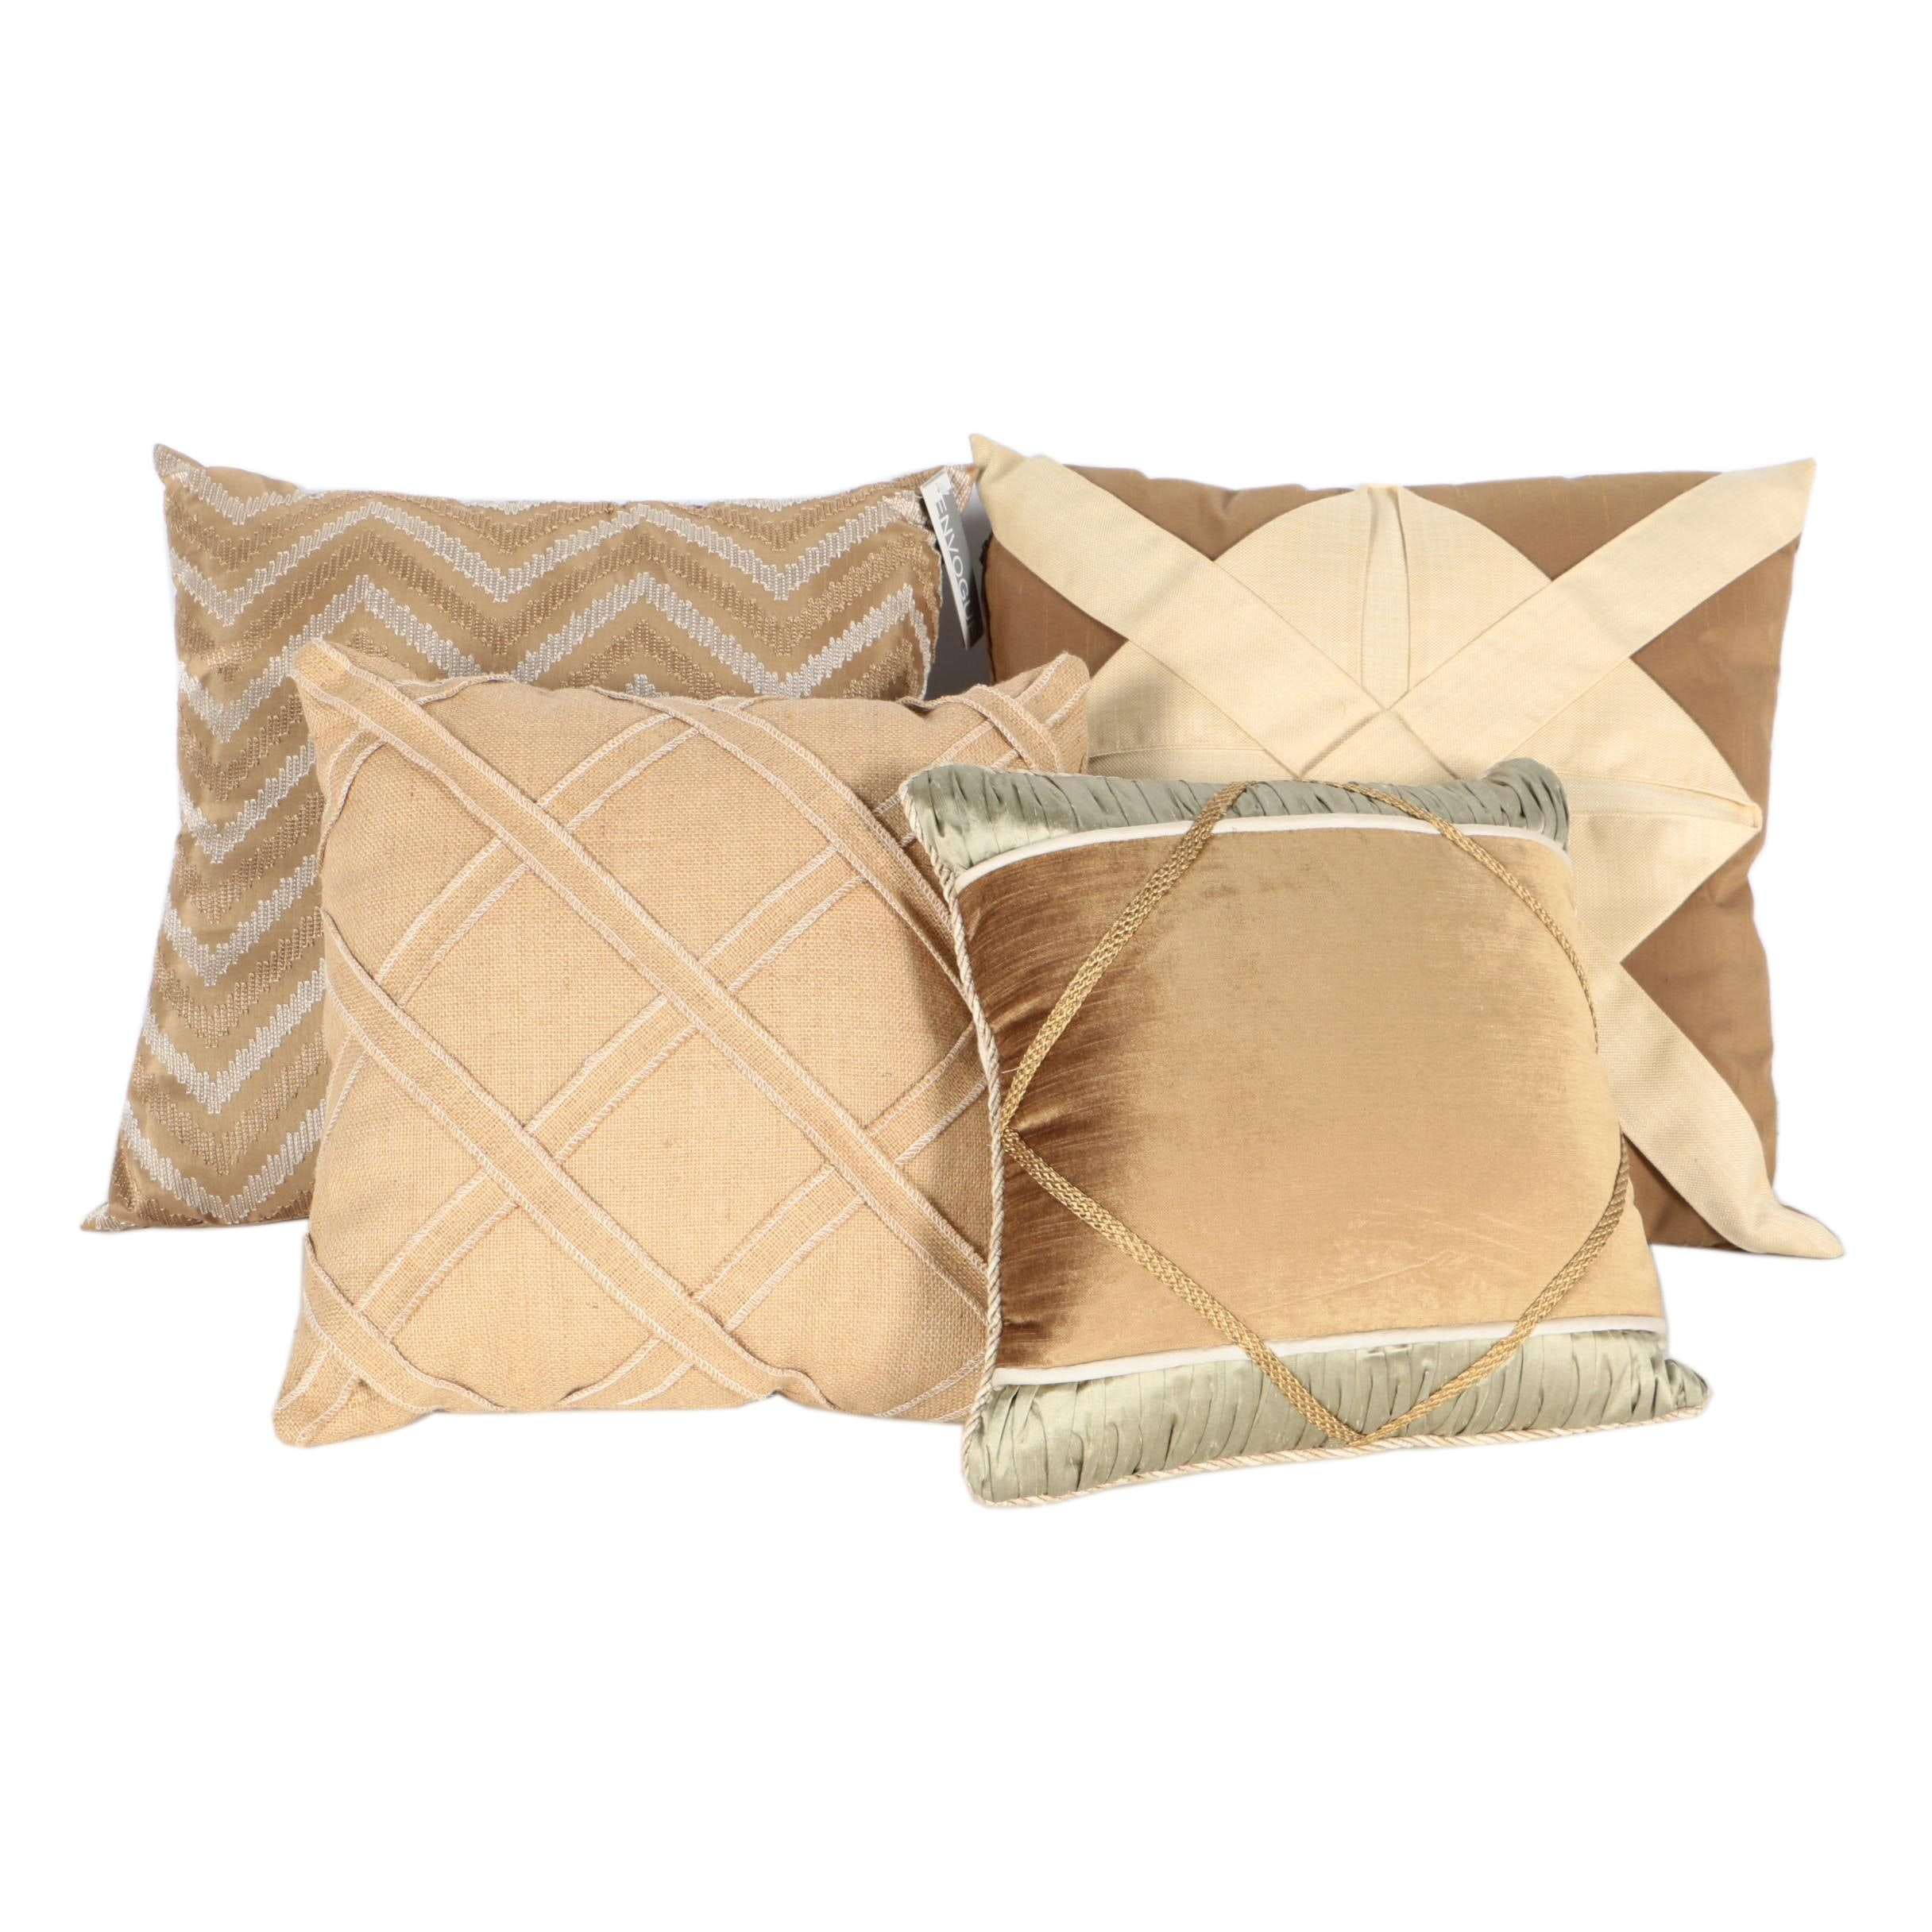 Collection of Four Neutral Hued Decorative Throw Pillows